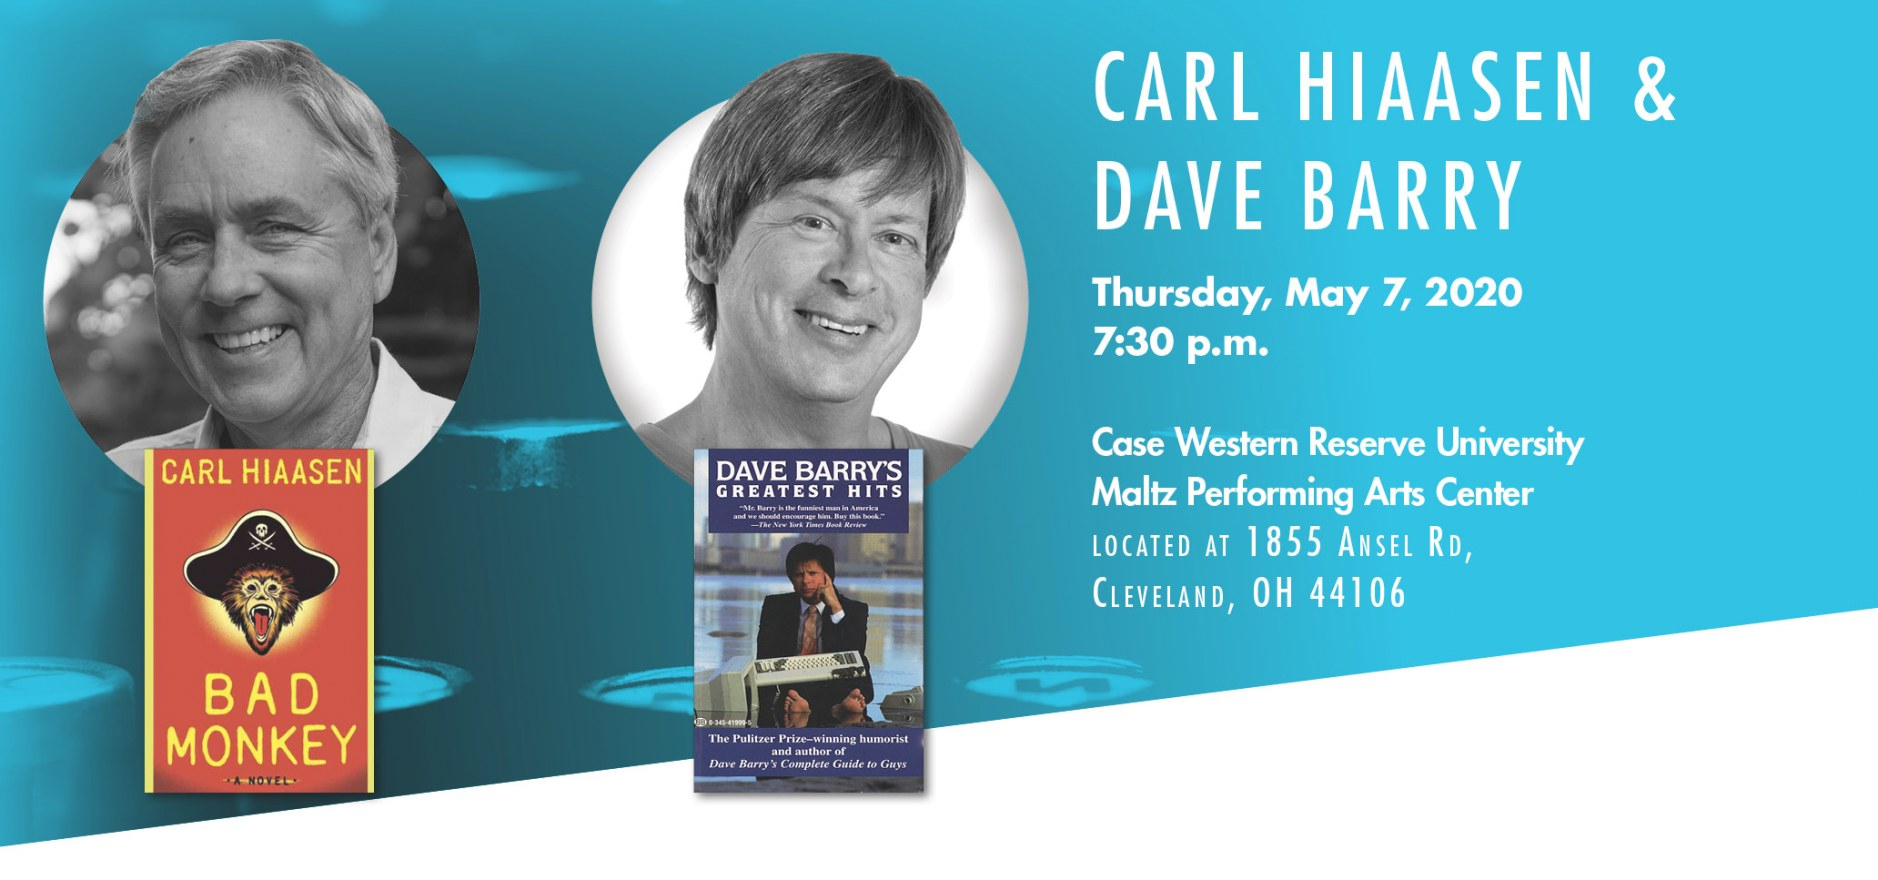 Carl Hiaasen & Dave Barry | The William N. Skirball Writers intended for Dave Barry Year In Review 2019